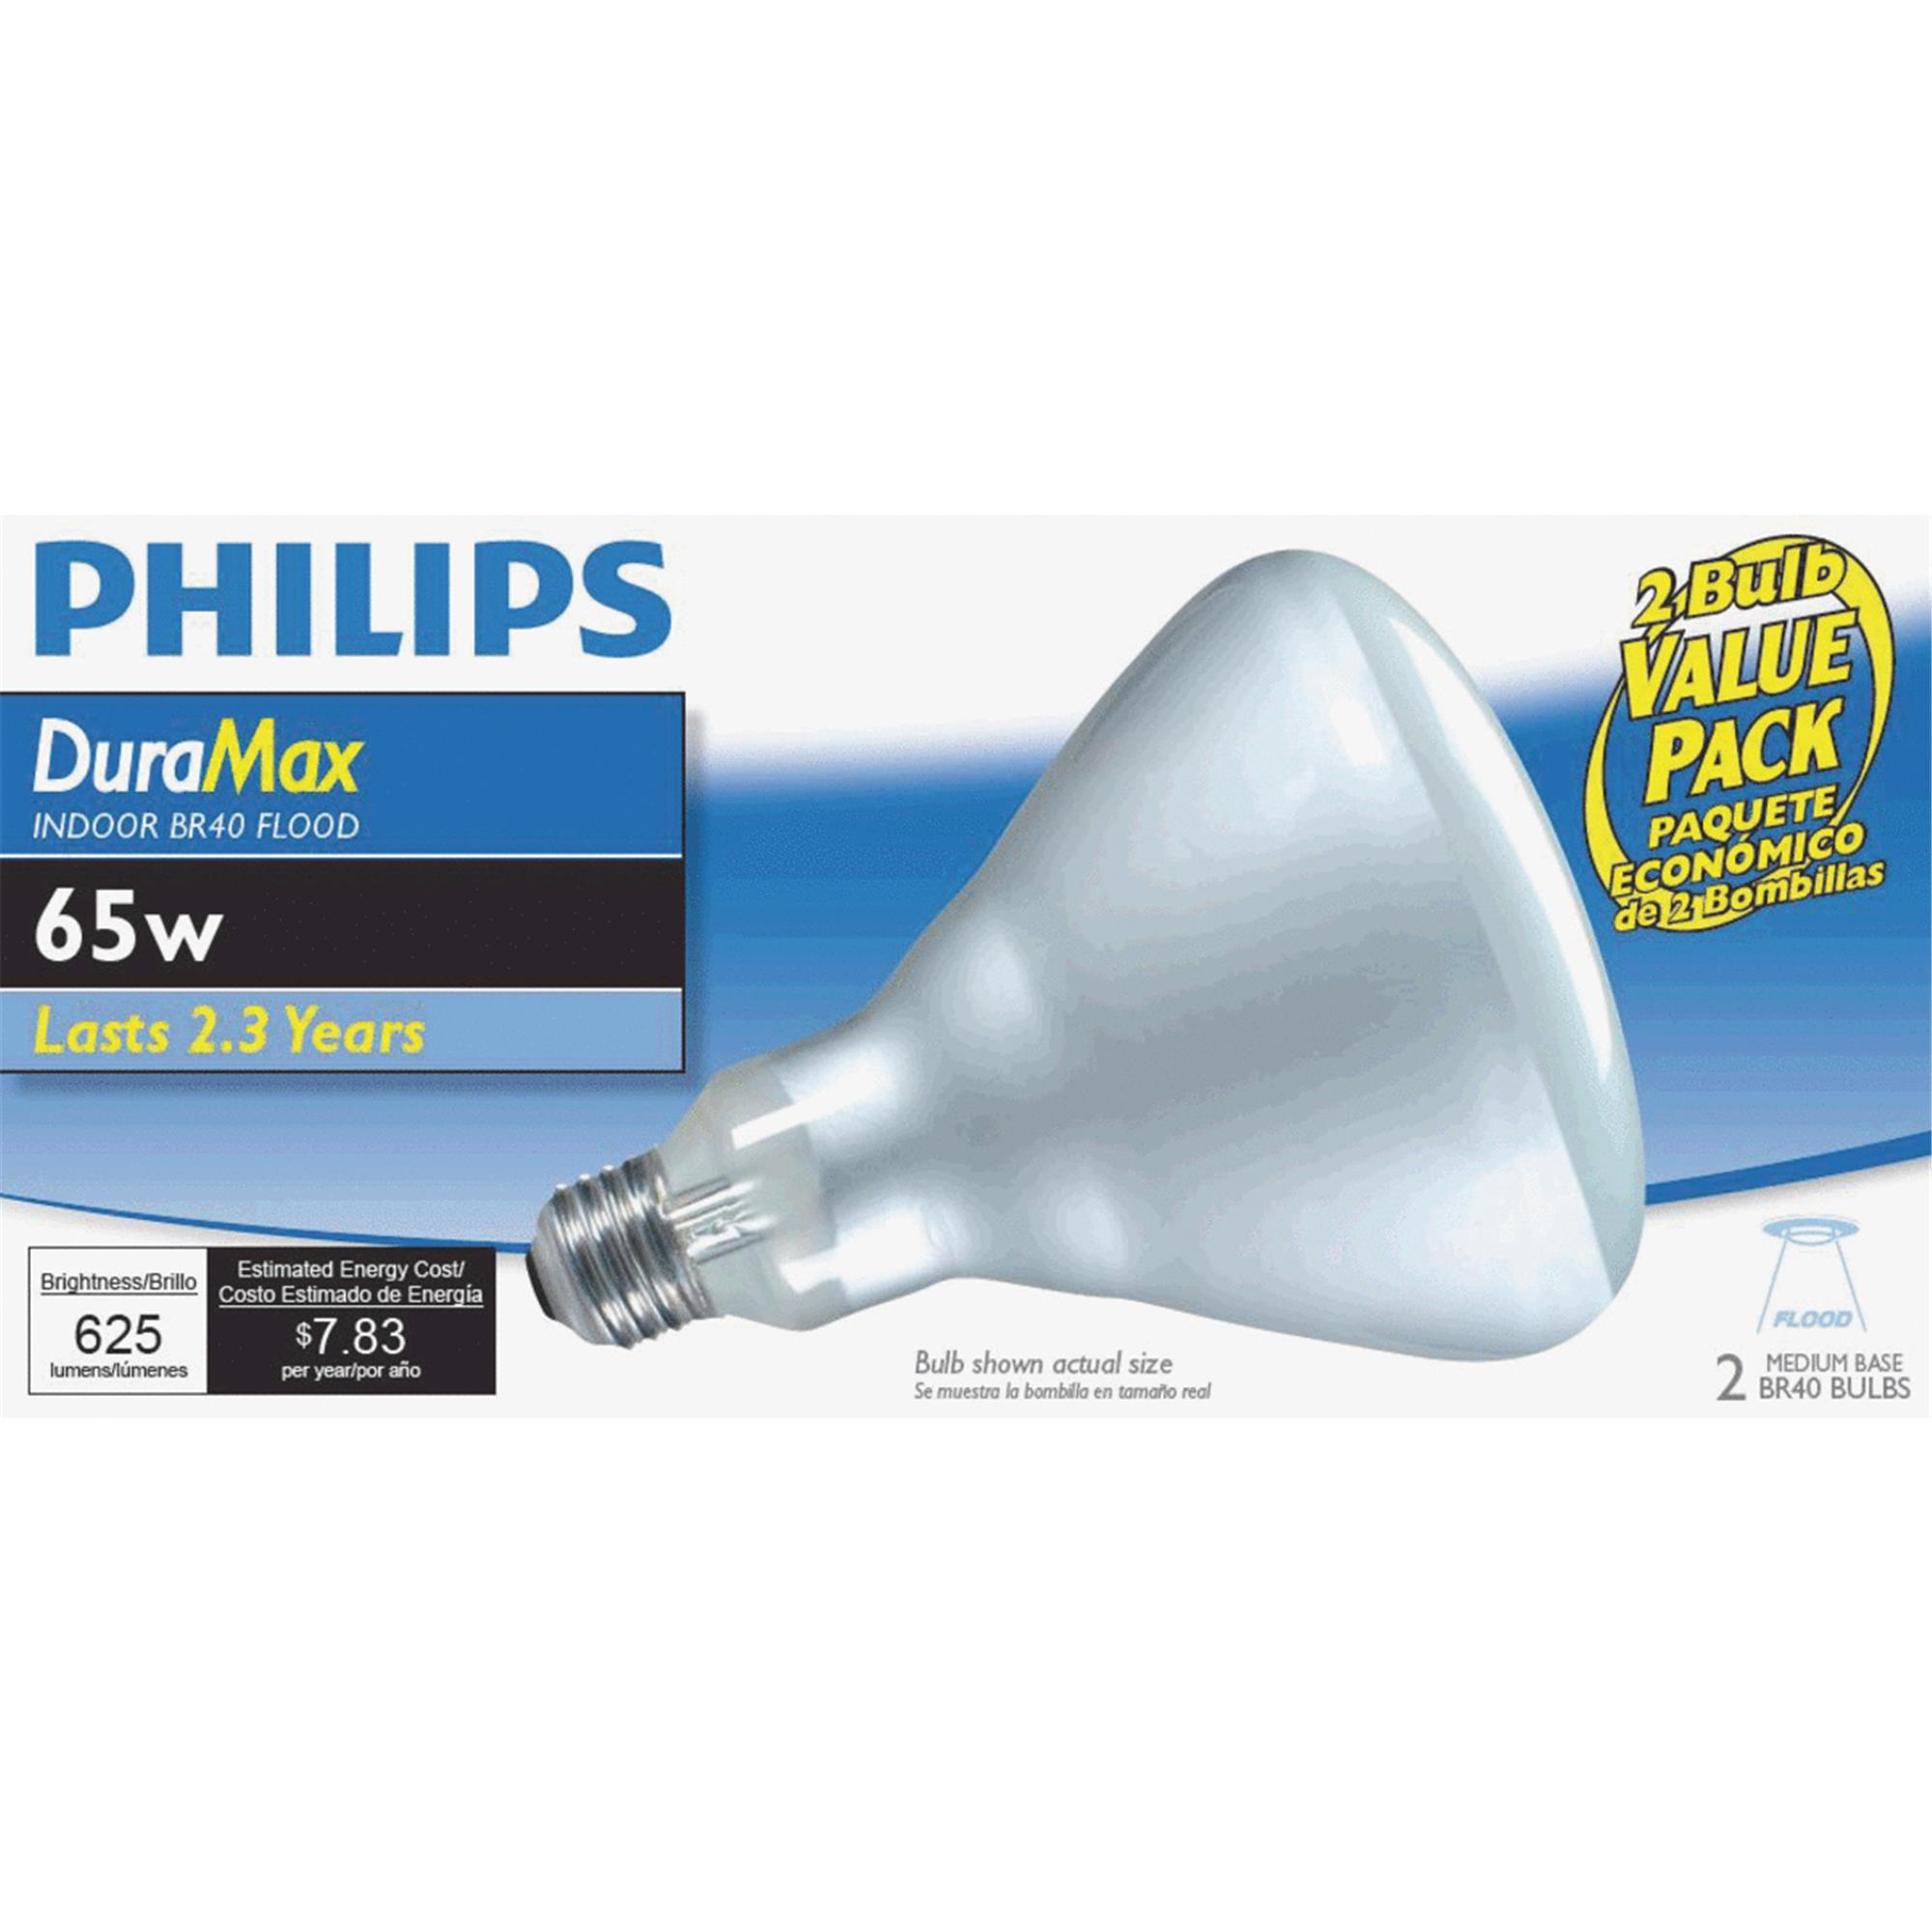 Philips Duramax Incandescent Floodlight Light Bulb, 65W, 2-count